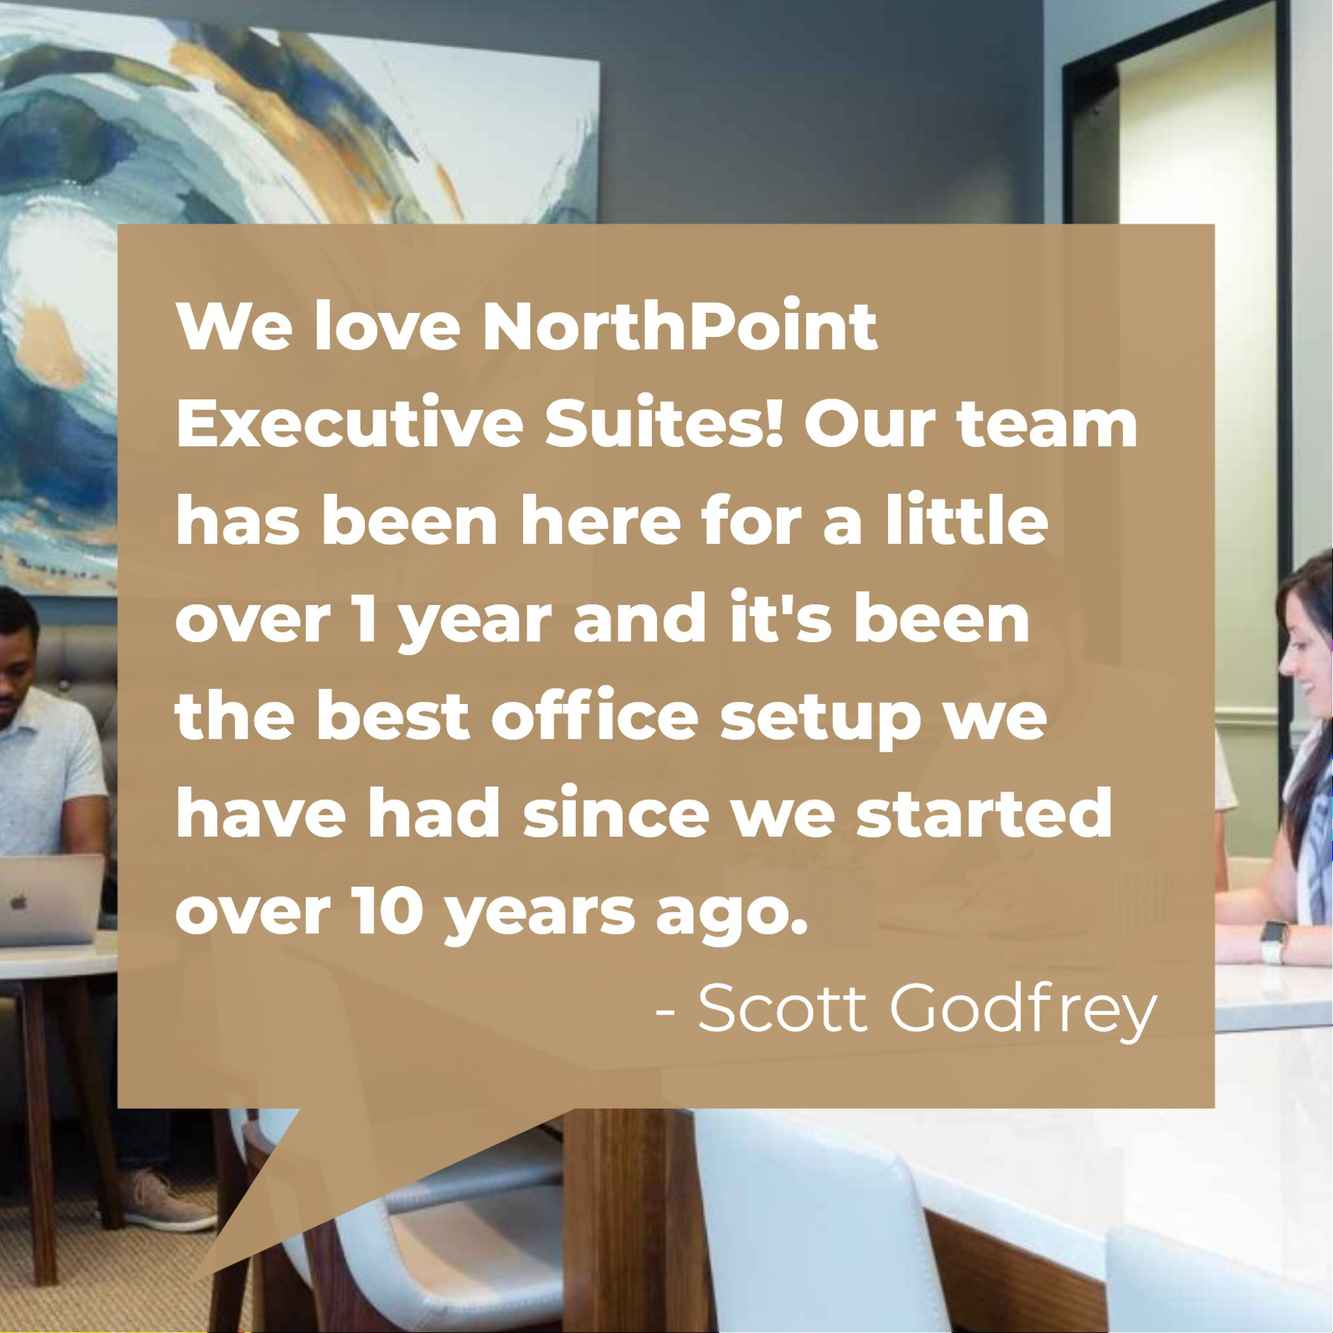 Scott Godfrey shares his thoughts on NorthPoint Executive Suites.